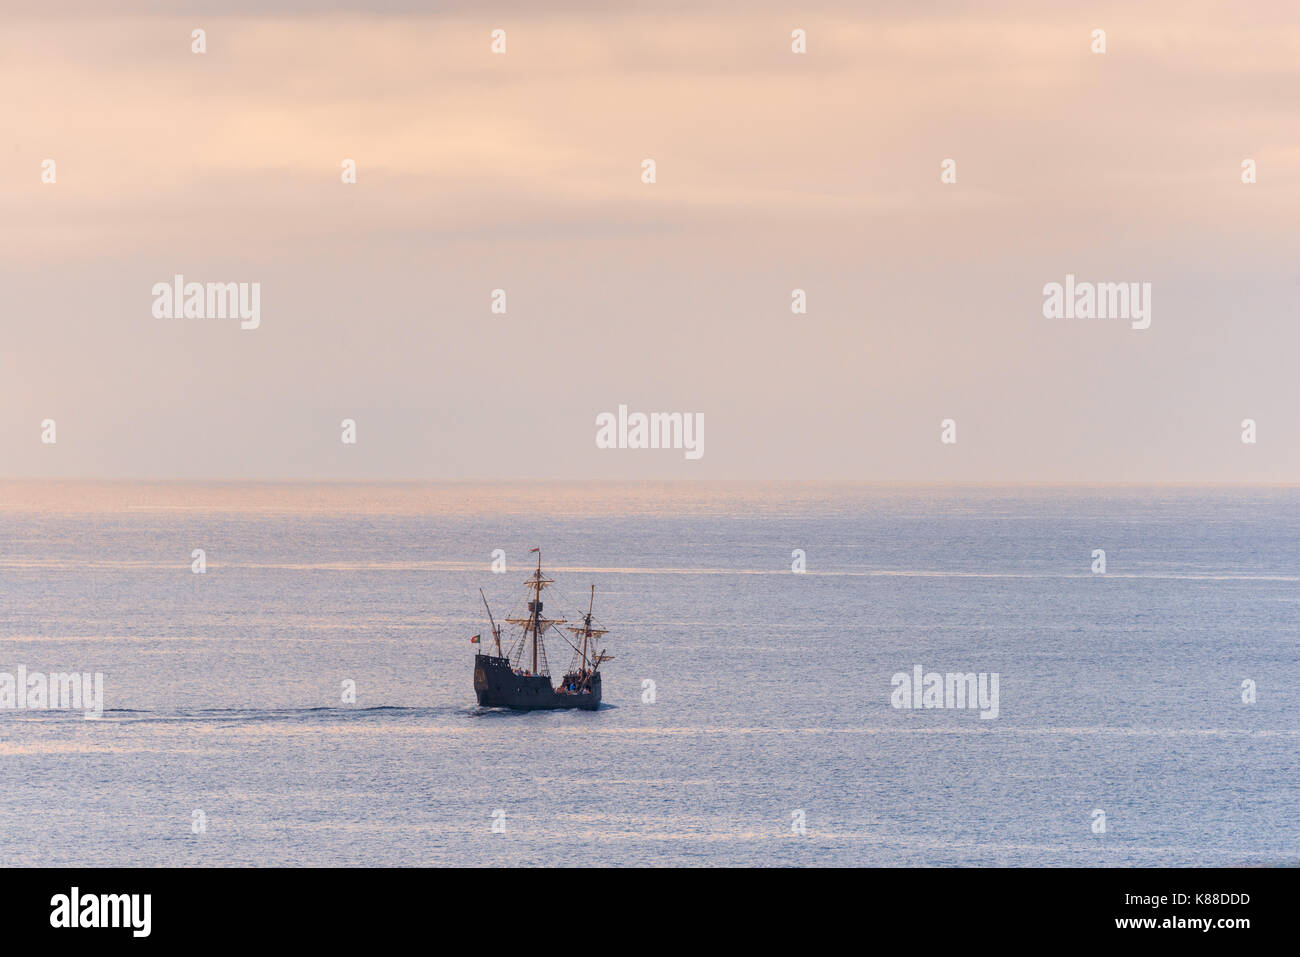 replica of an old caravel on the shores of the island of Madeira - Stock Image